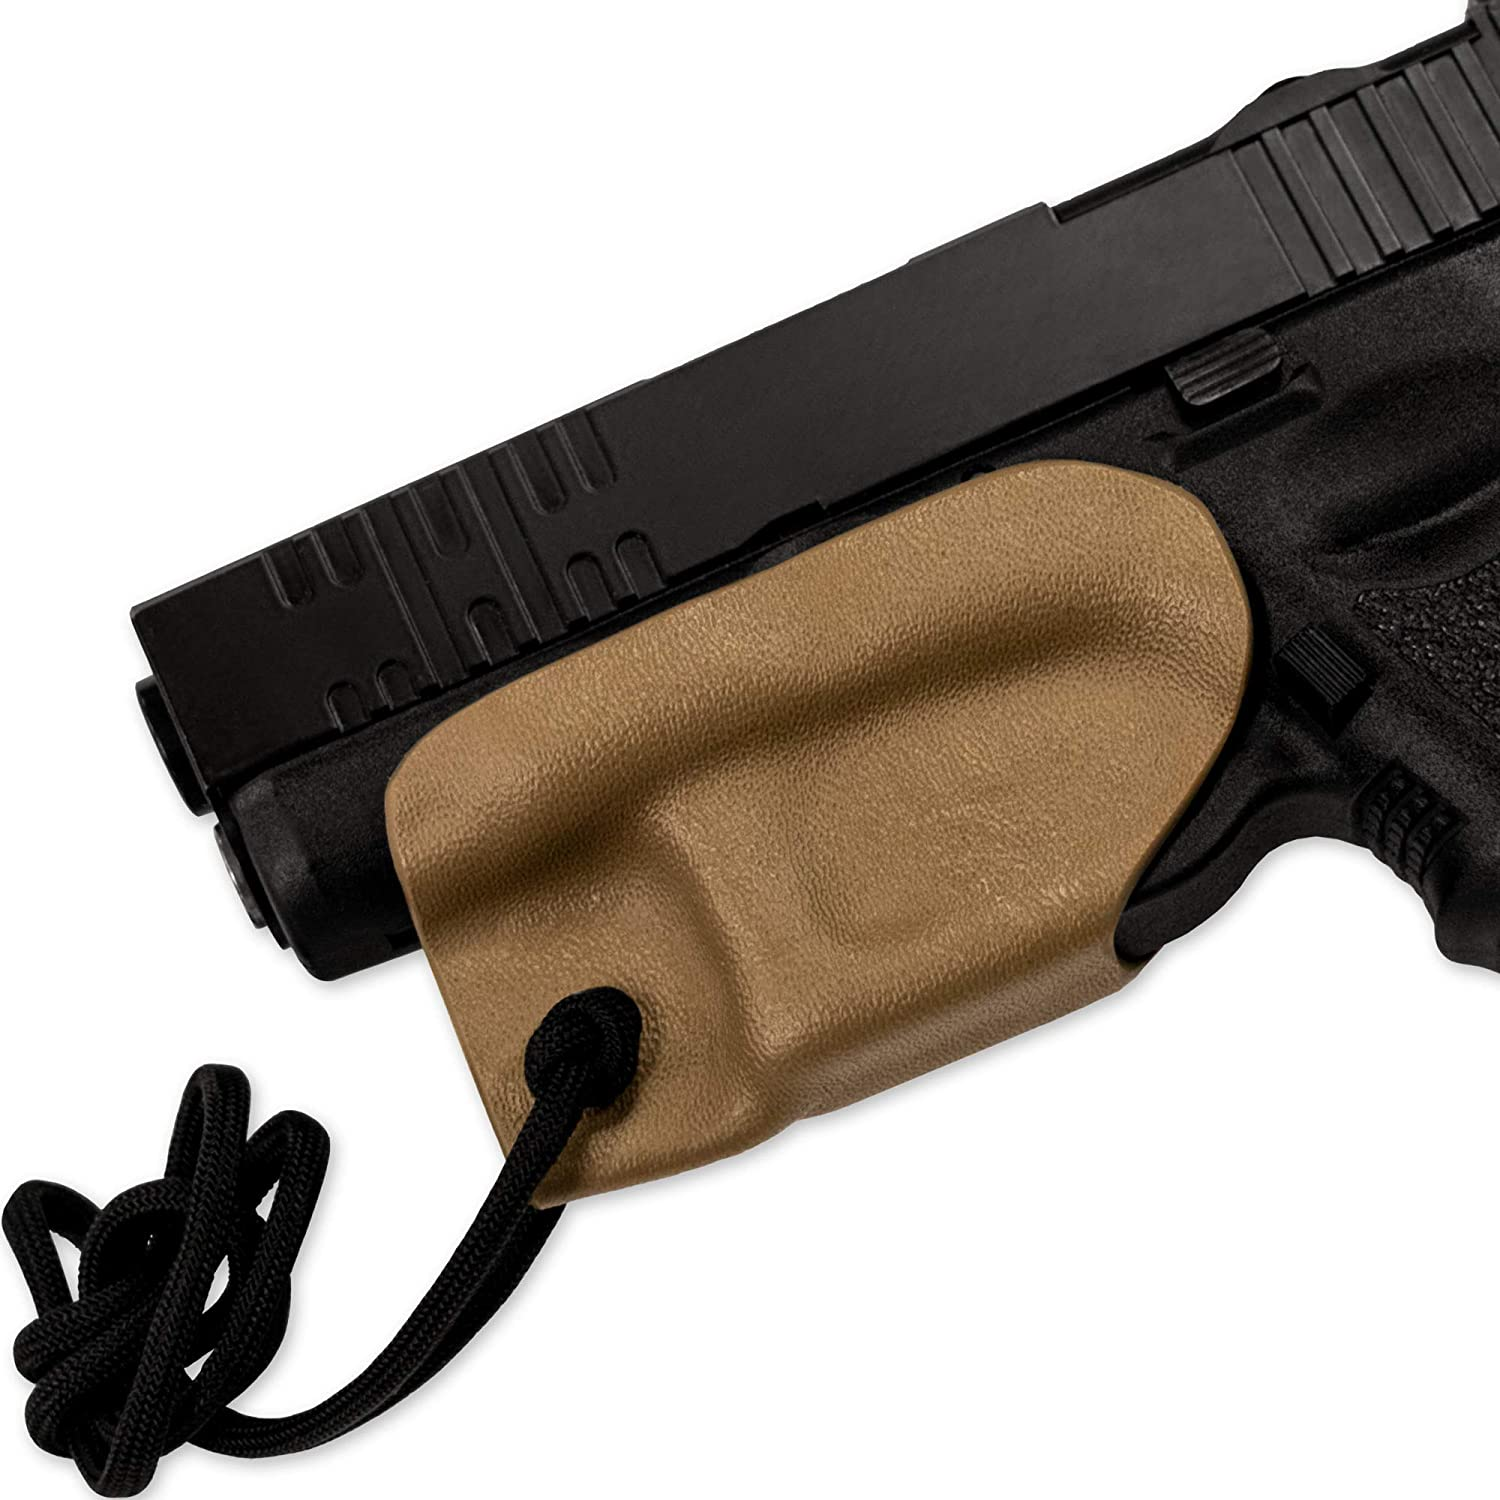 Kydex Trigger Guard Fits Glock 26//27 Made in the USA